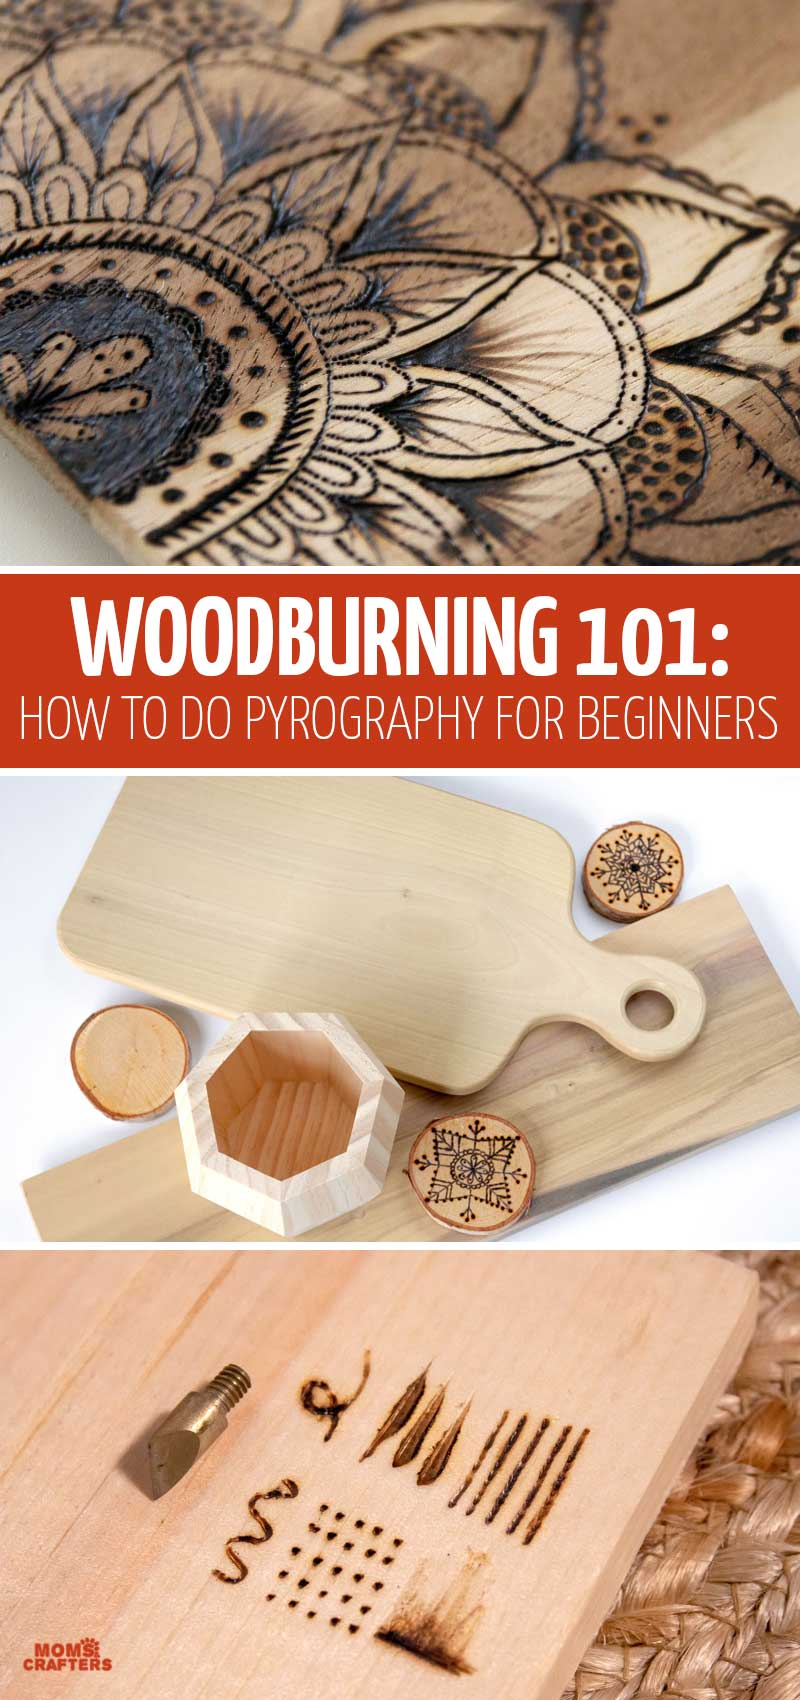 Click for a full woodburning tutorial for beginners! This teaches you woodburning tools, tips, techniques, patterns, strokes, designs, and more - basically everthing you need to know to learn how to do pyrography